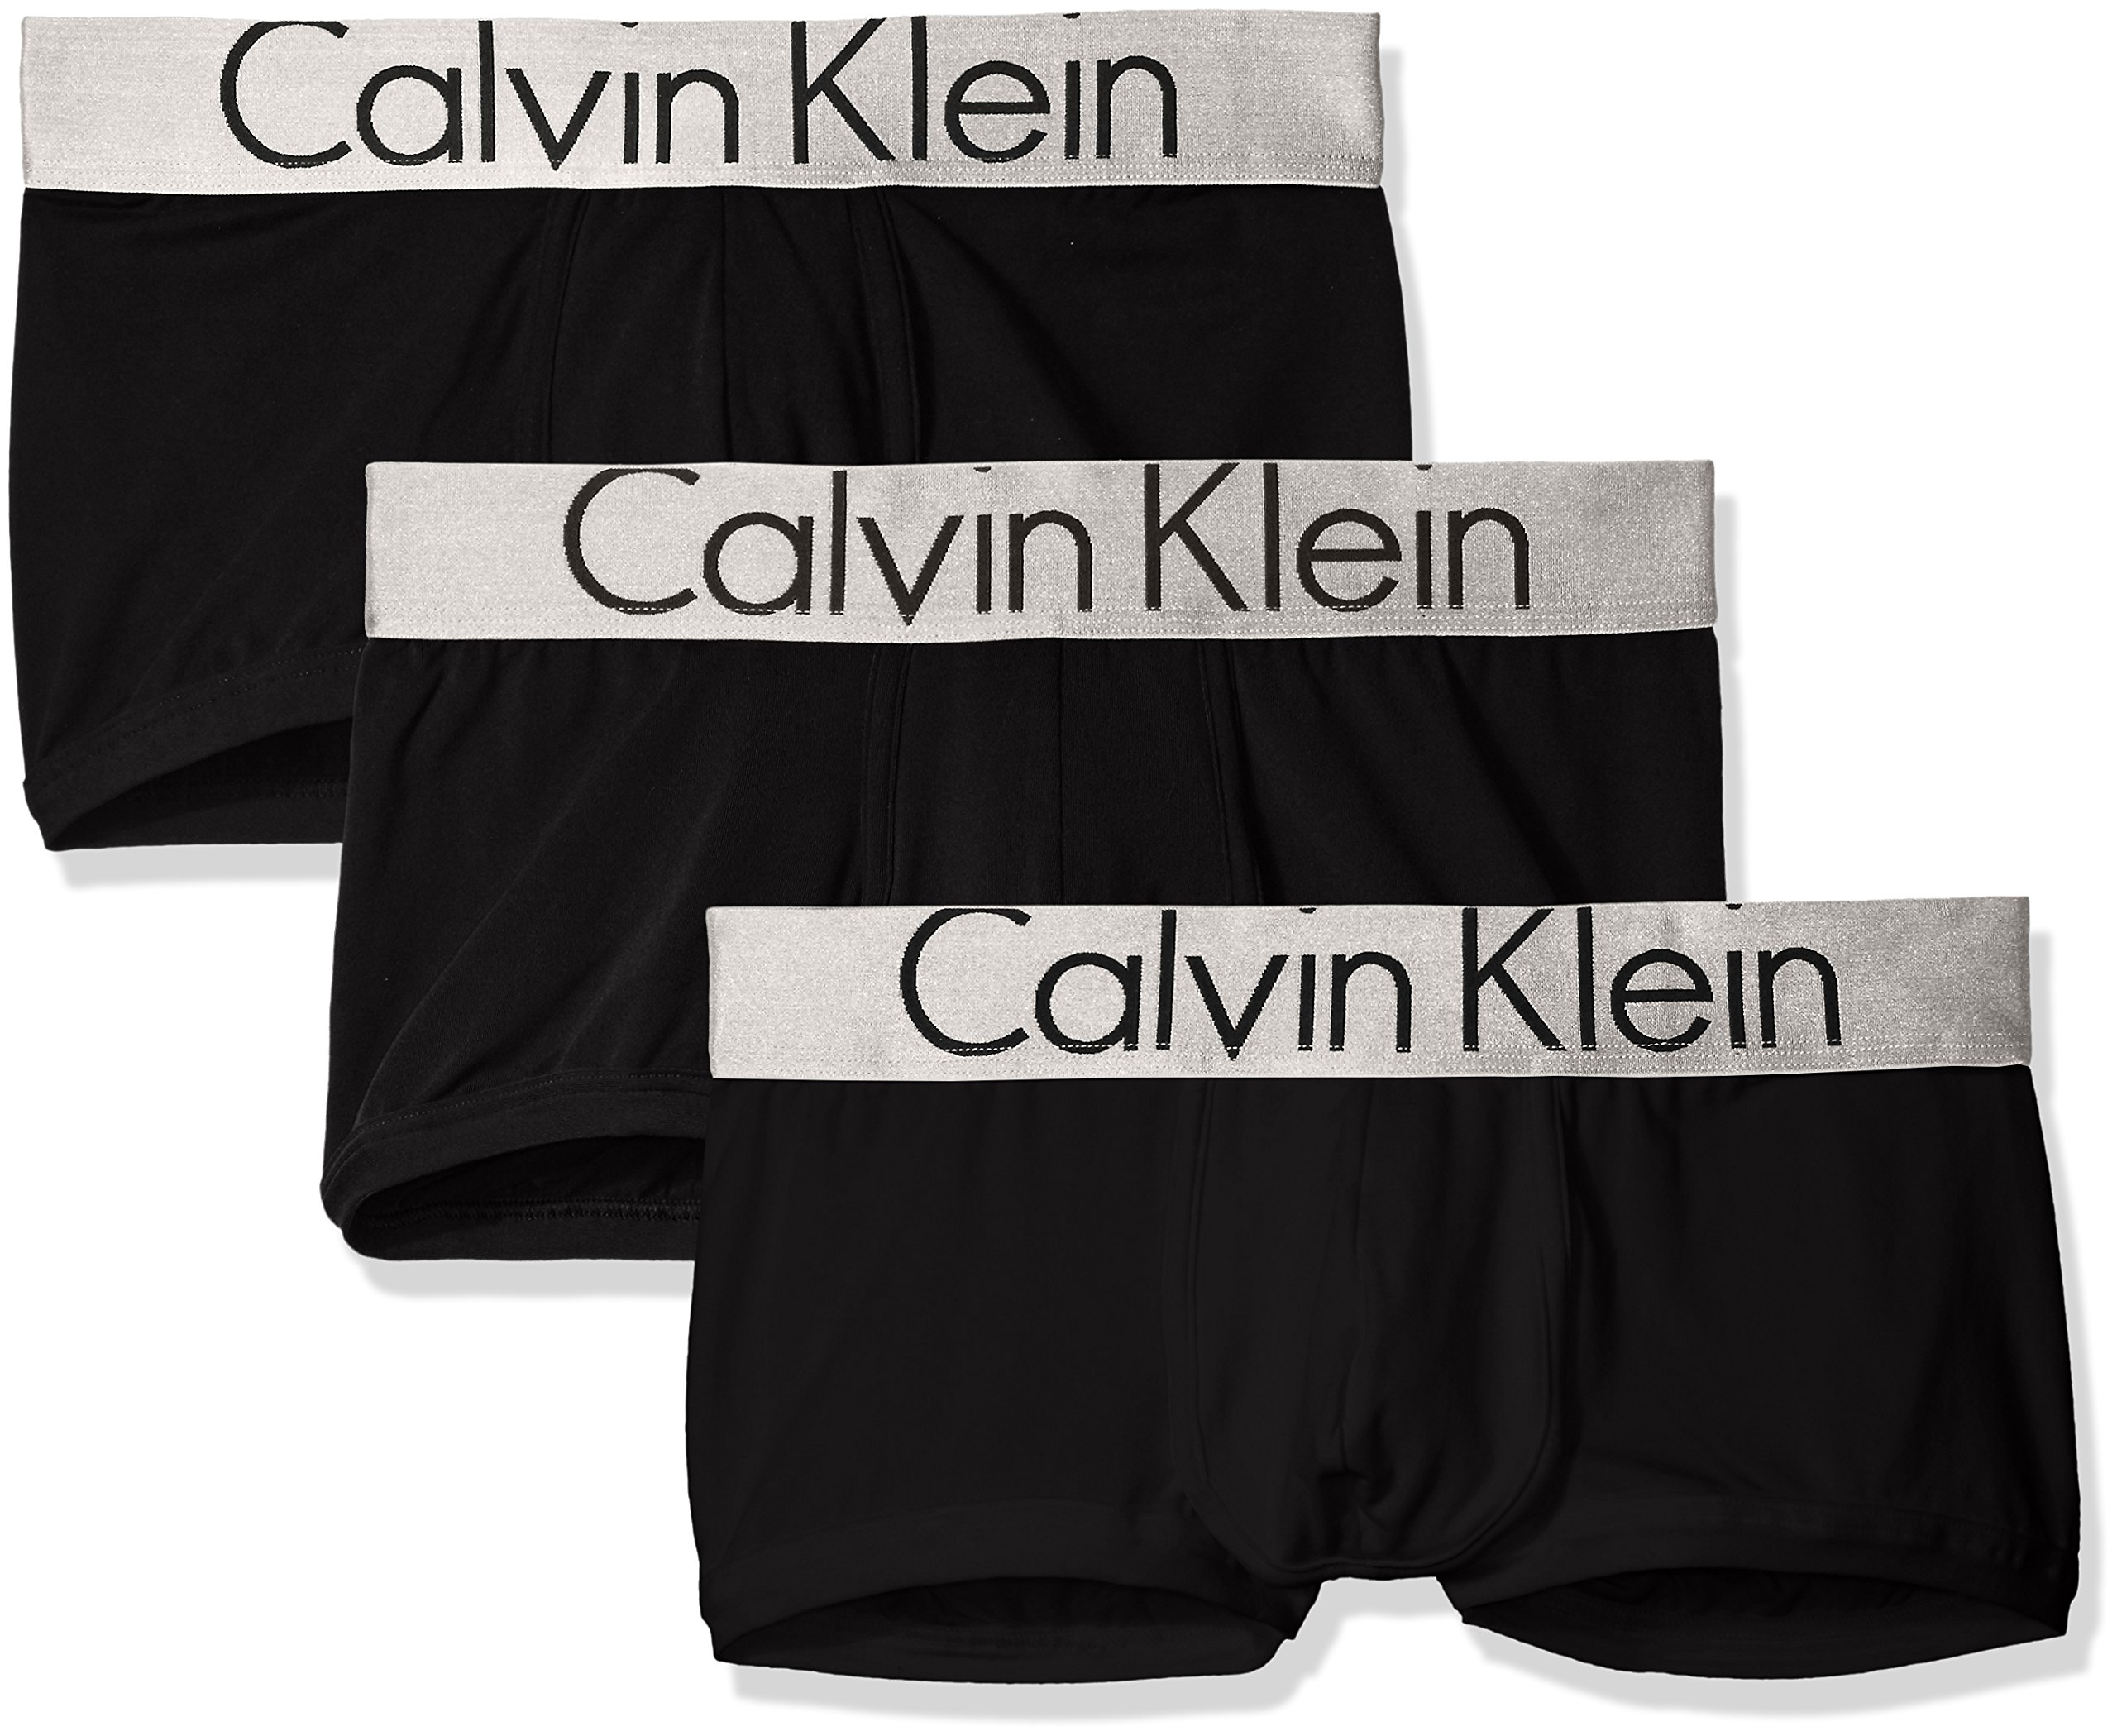 Calvin Klein Men's Steel Micro Low Rise Trunks, Black/Black/Black, M by Calvin Klein